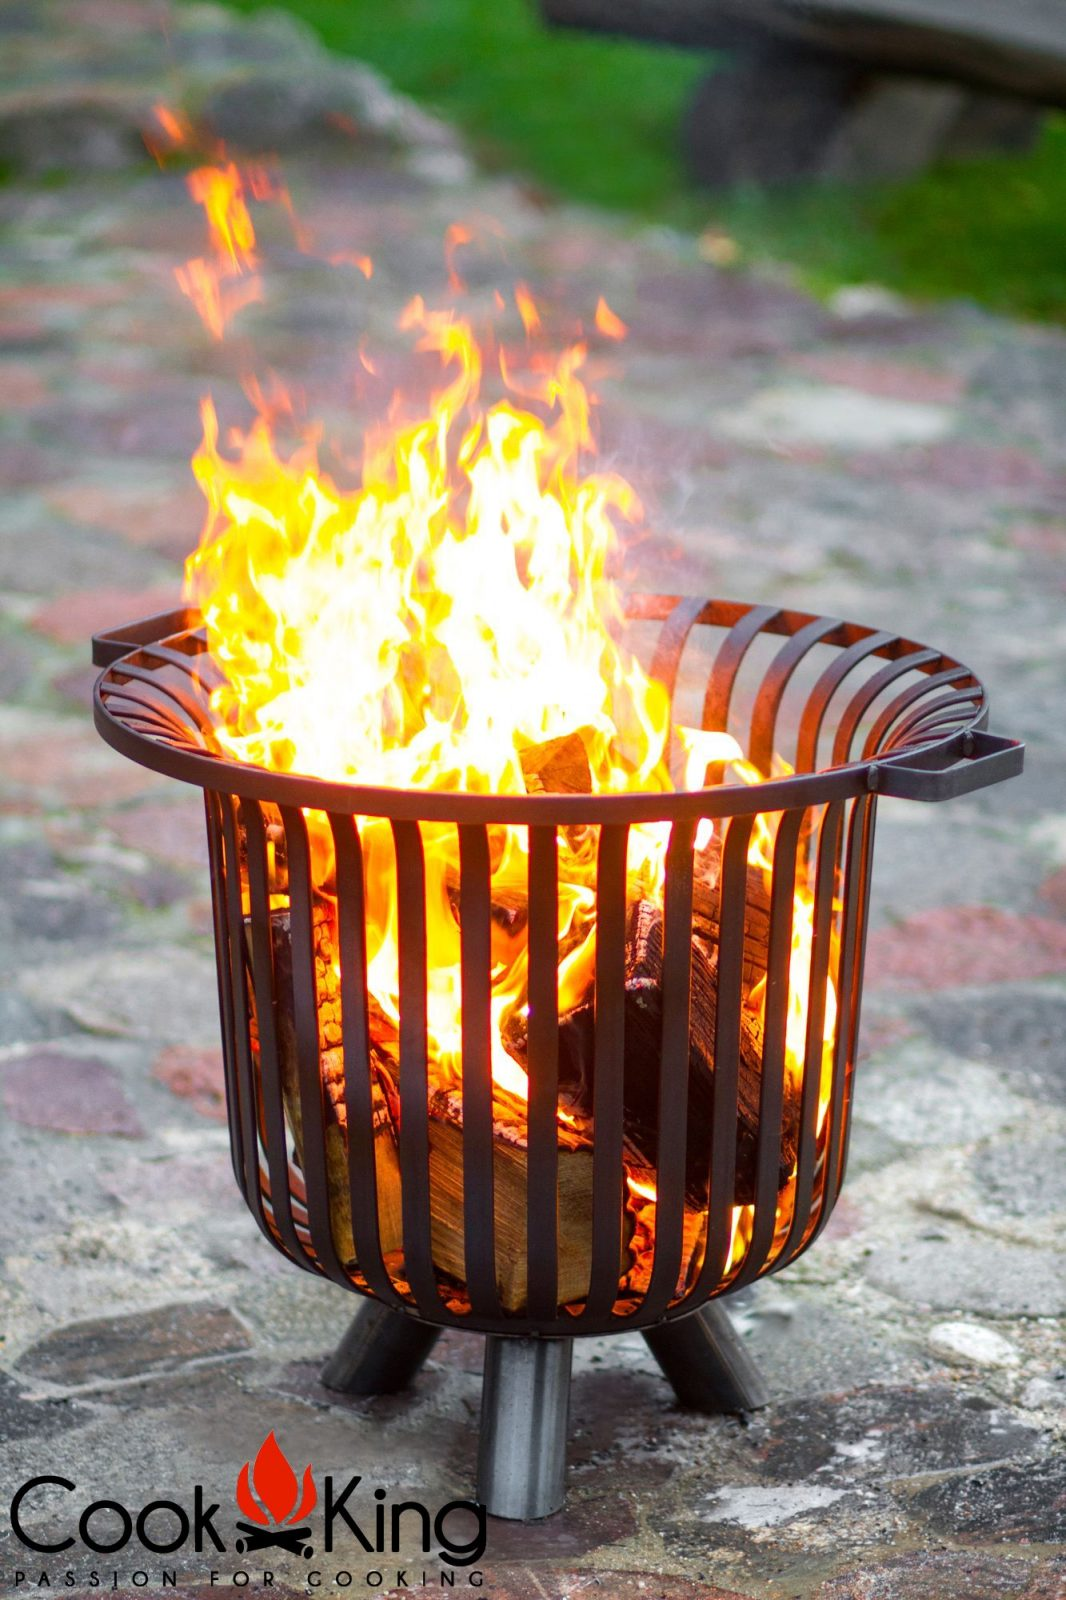 111452 CookKing Fire Basket 8 Log Basket | Avant Garden